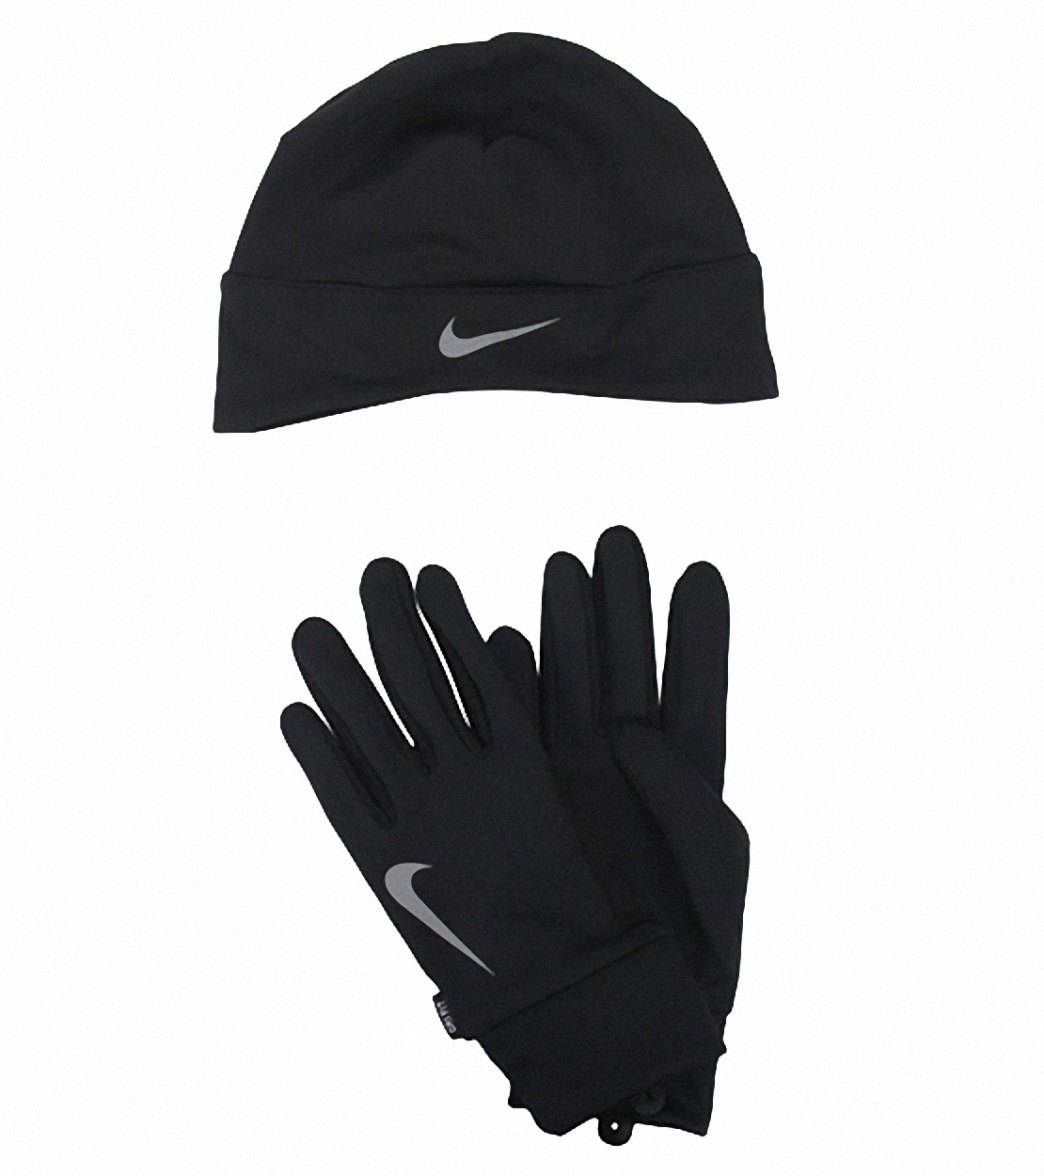 b4e2f9cc6598f6 Nike Men's Running Dri-Fit Beanie/Glove Set at SwimOutlet.com